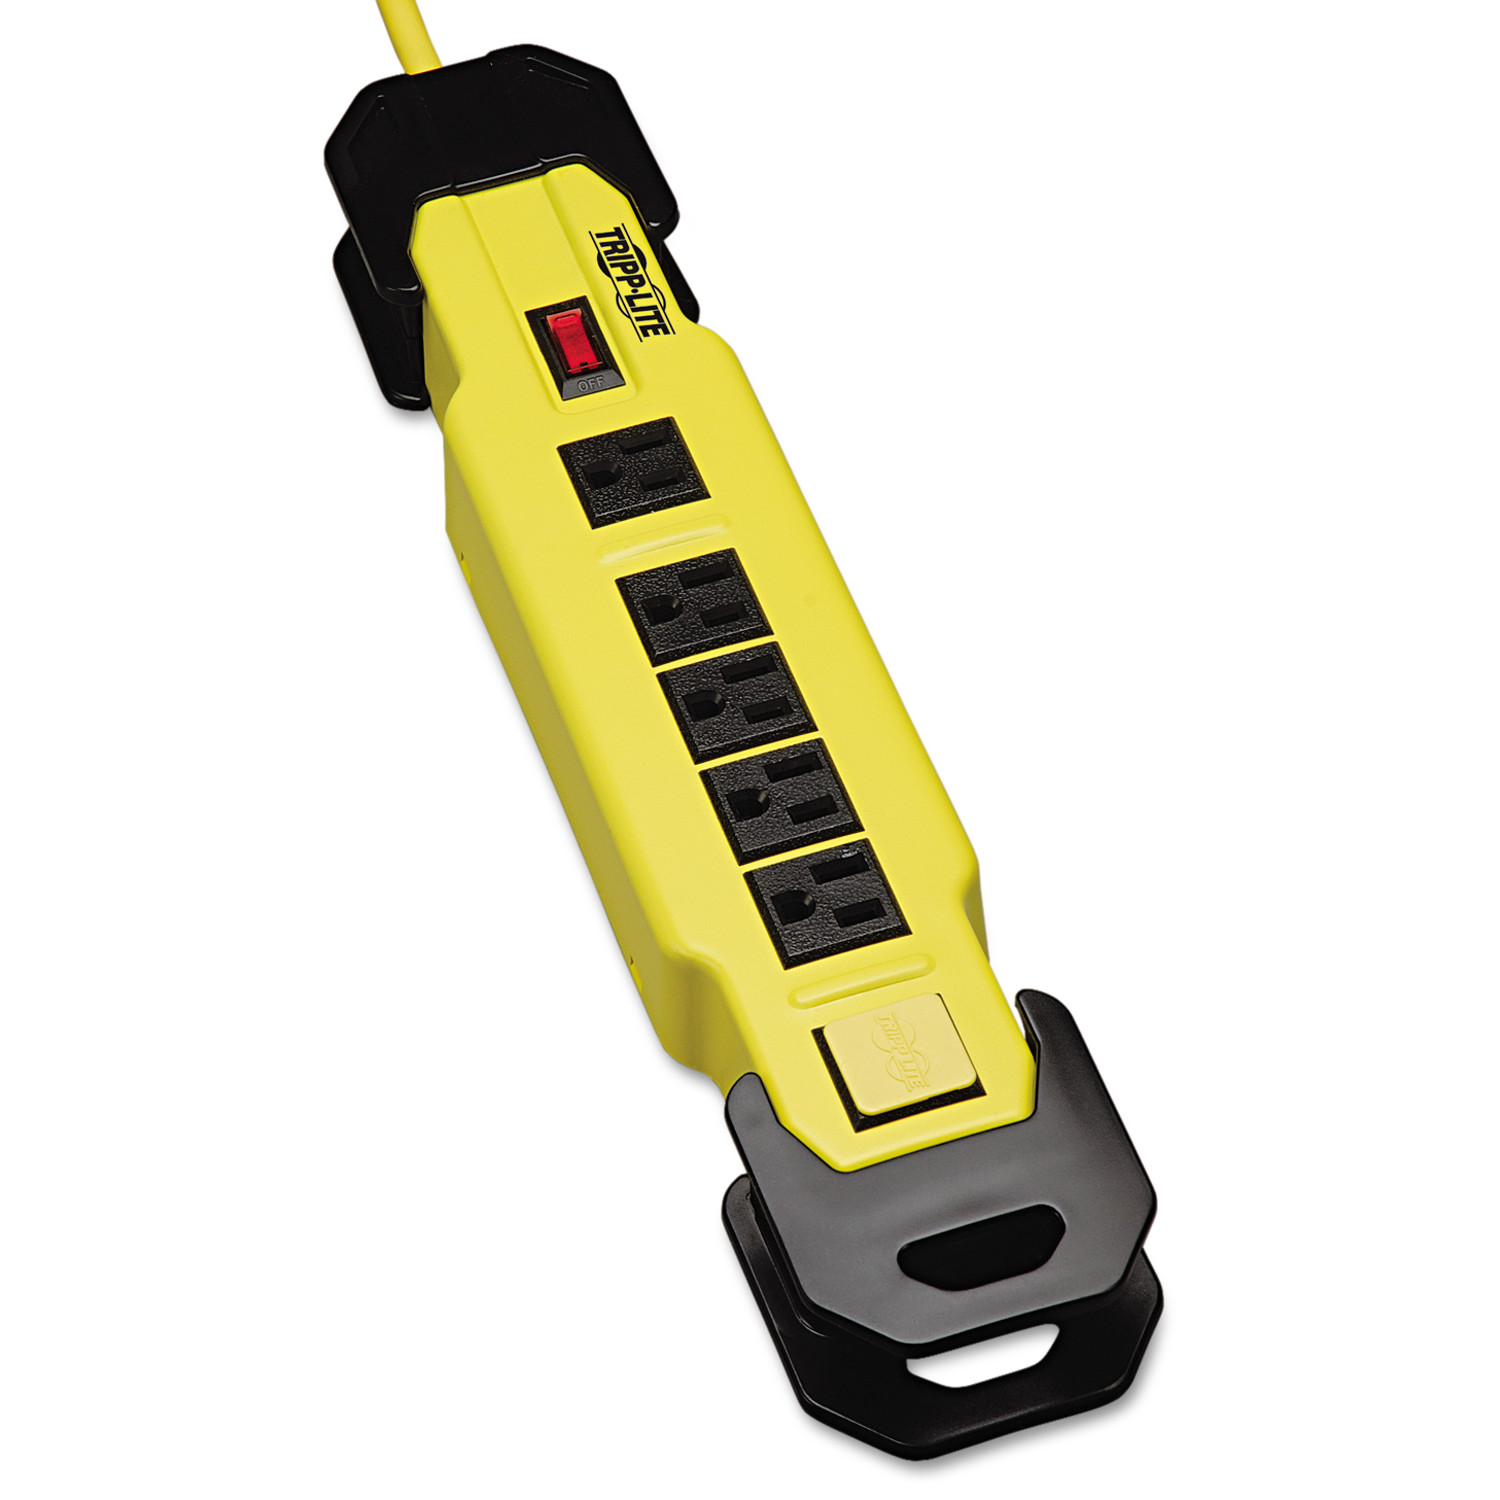 Tripp Lite 8-Outlet Safety Power Strip With GFCI Plug - 9' Cord